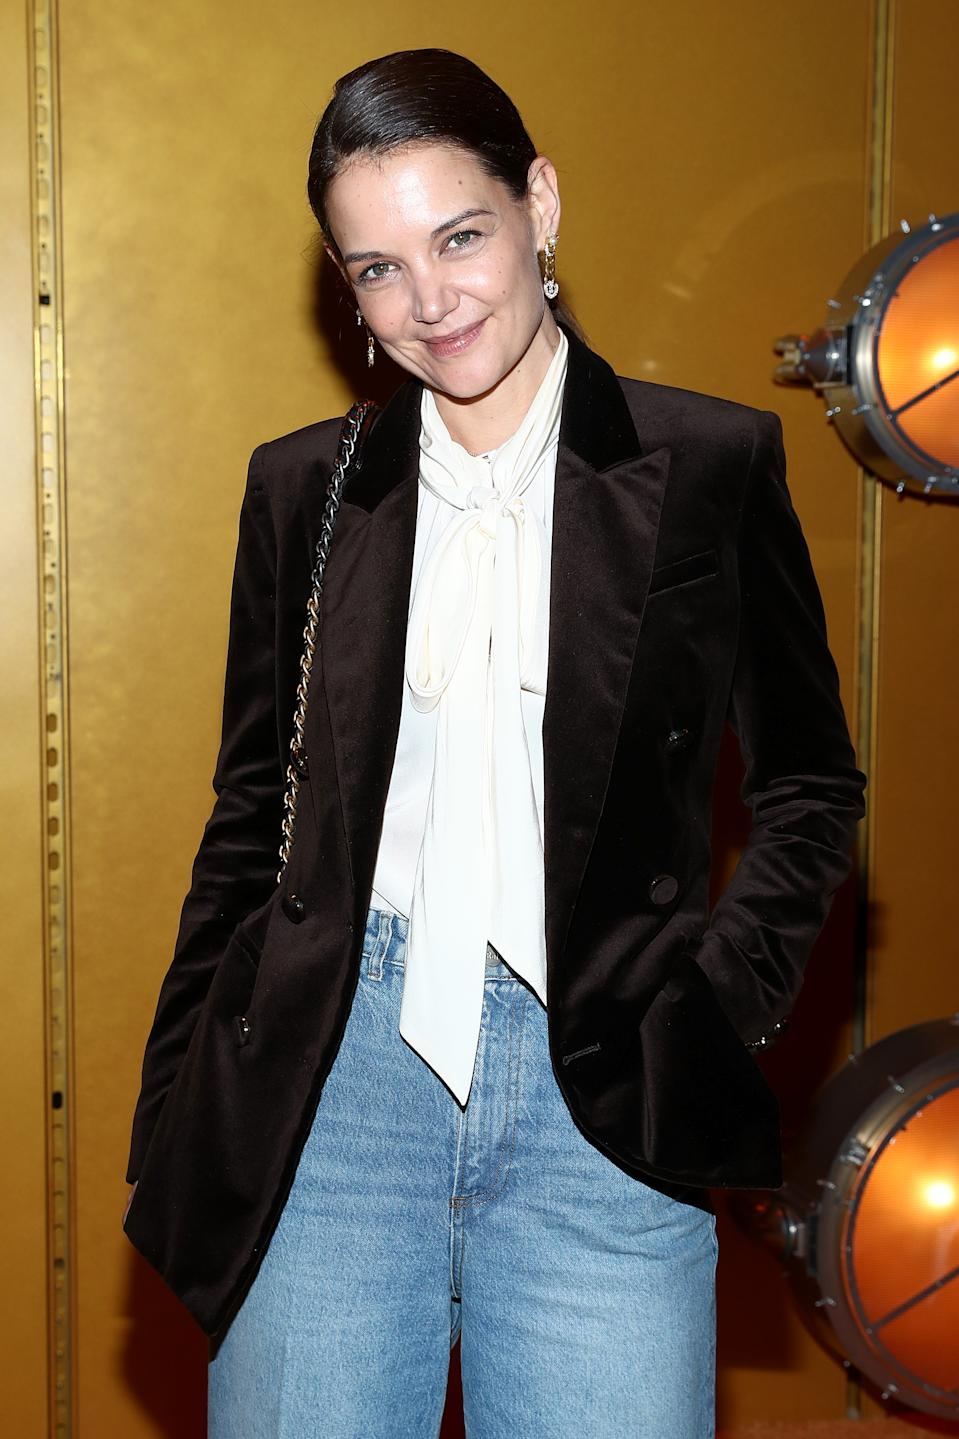 NEW YORK, NEW YORK - FEBRUARY 10: Katie Holmes attends the Zimmermann fashion show during February 2020 - New York Fashion Week: The Shows at SIR Stage37 on February 10, 2020 in New York City. (Photo by Cindy Ord/Getty Images for NYFW: The Shows)